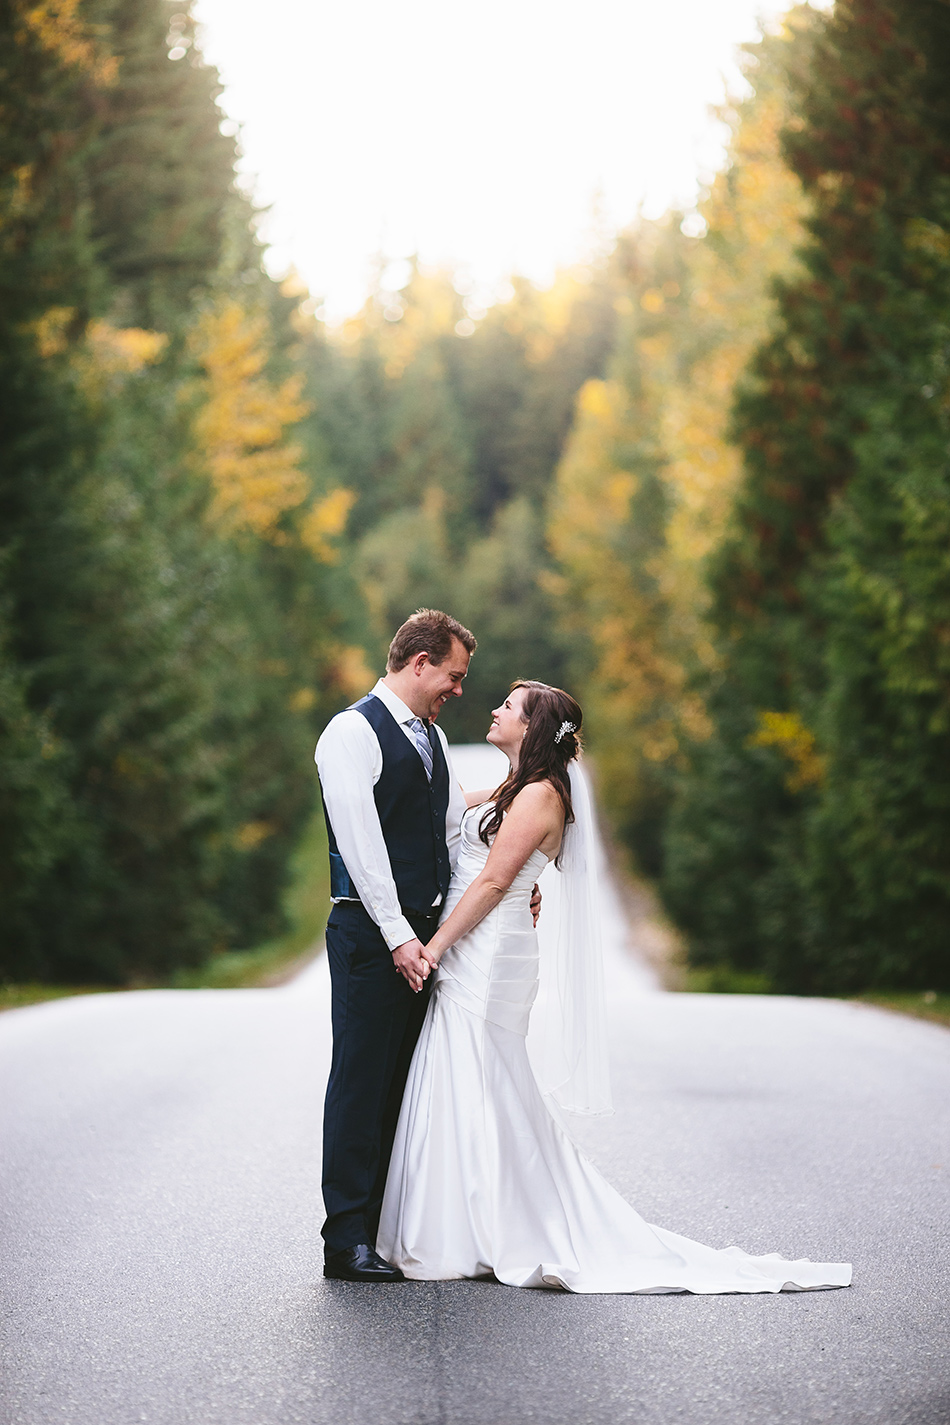 Fall Wedding Portrait on Road